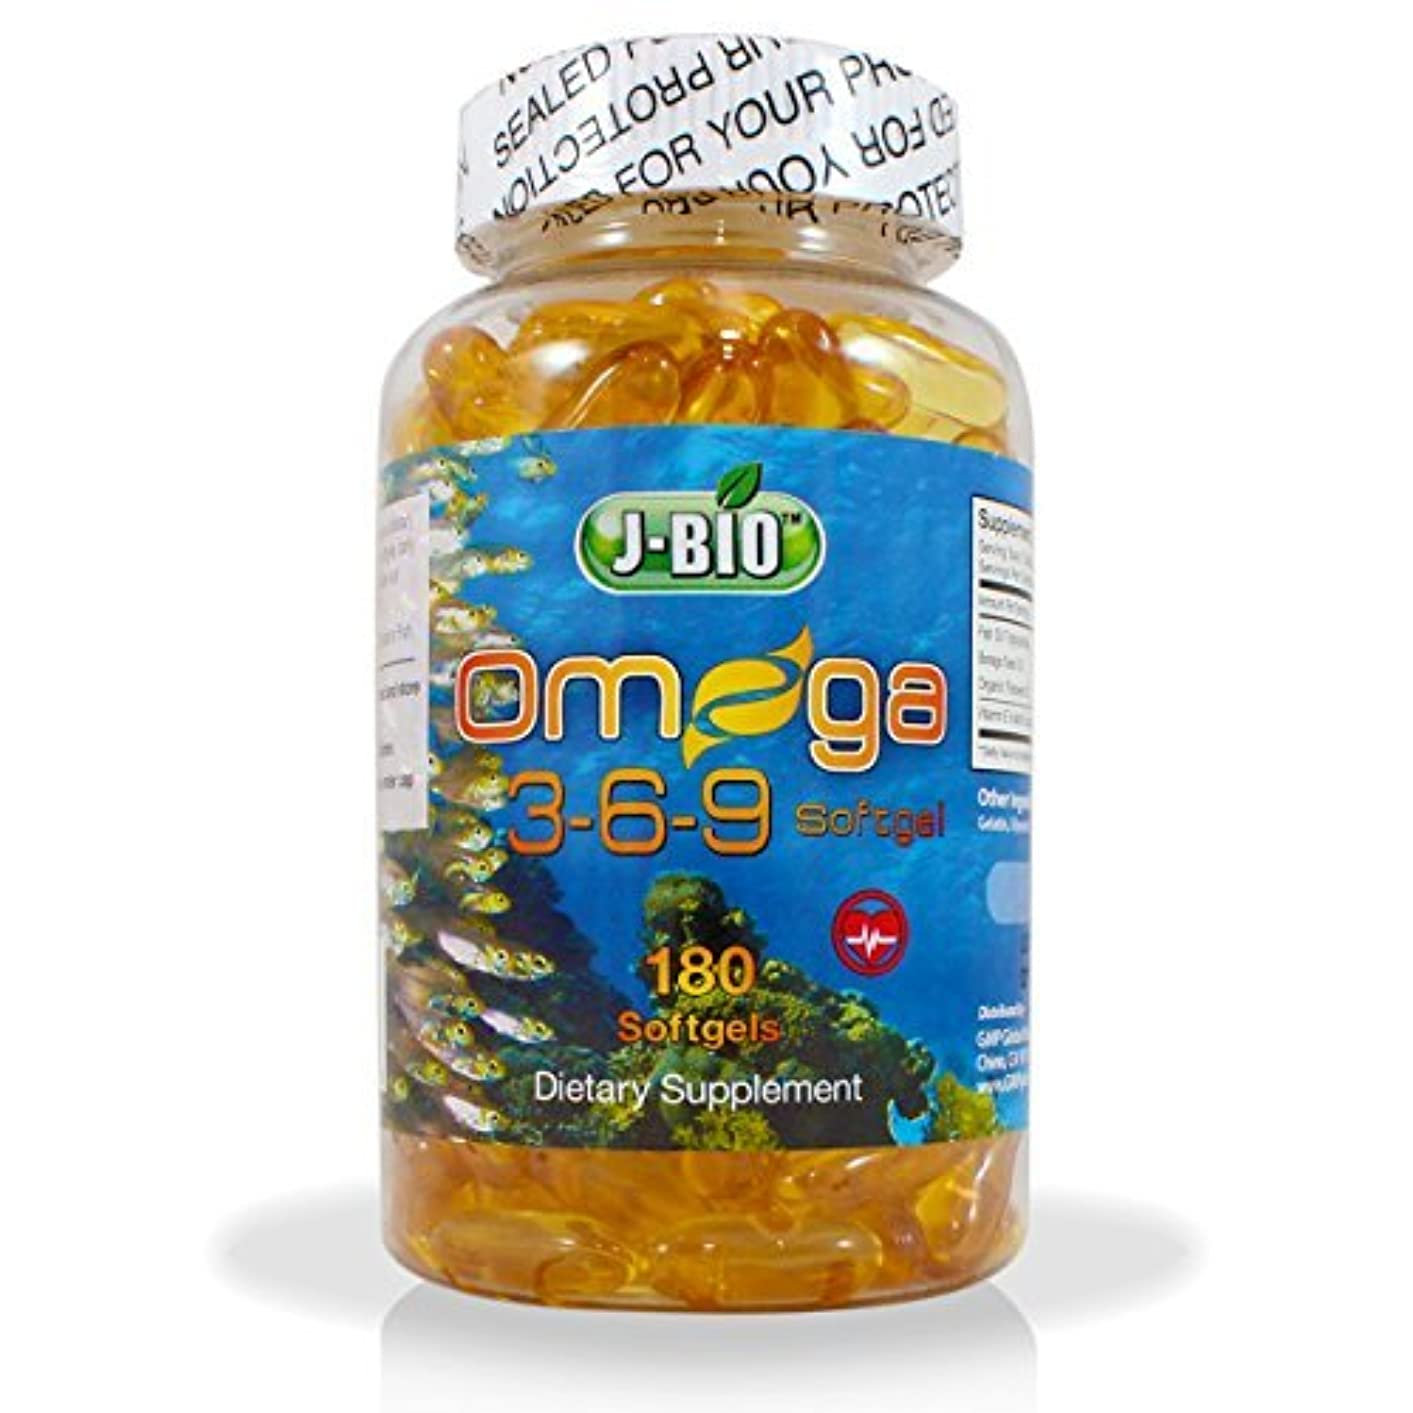 ばかげている気味の悪い驚いたJ-BIO Omega 3-6-9 Fish Oil Pills (180 Counts) - Triple Strength Fish Oil Supplement (800mg Fish oil Triglycerides...